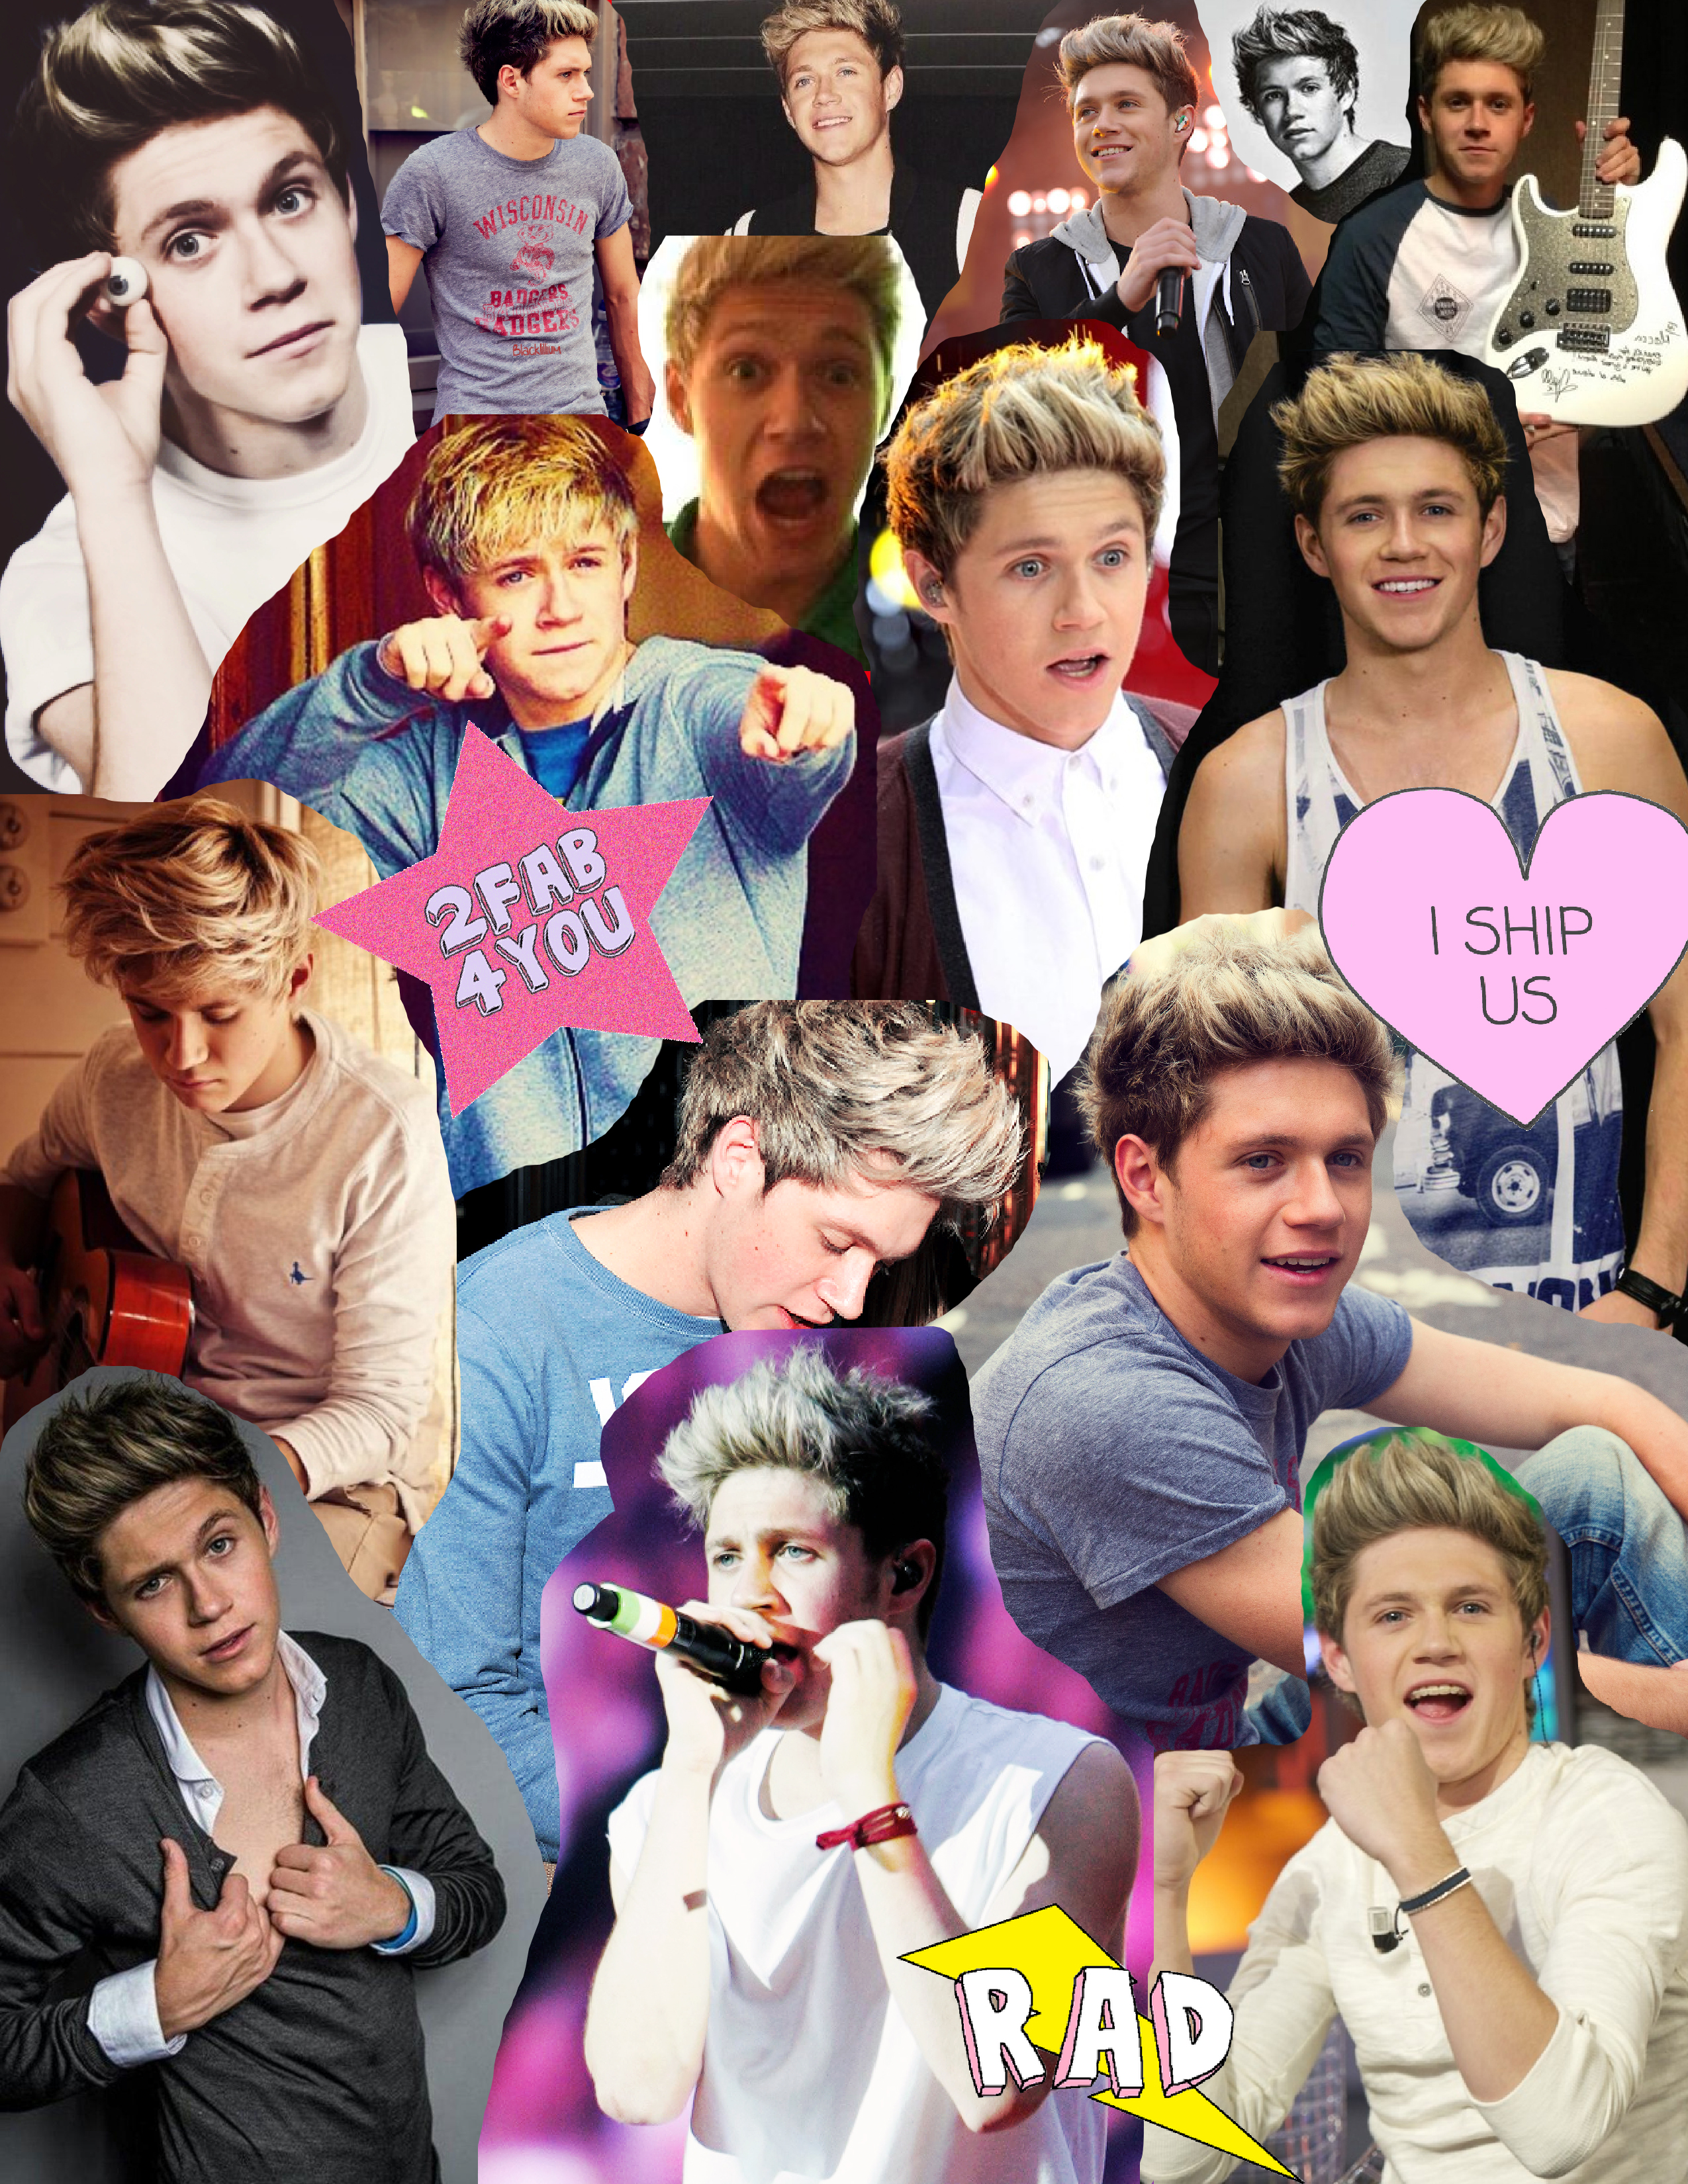 Niall Horan Collage by Woah-I-Didnt-Try on DeviantArt